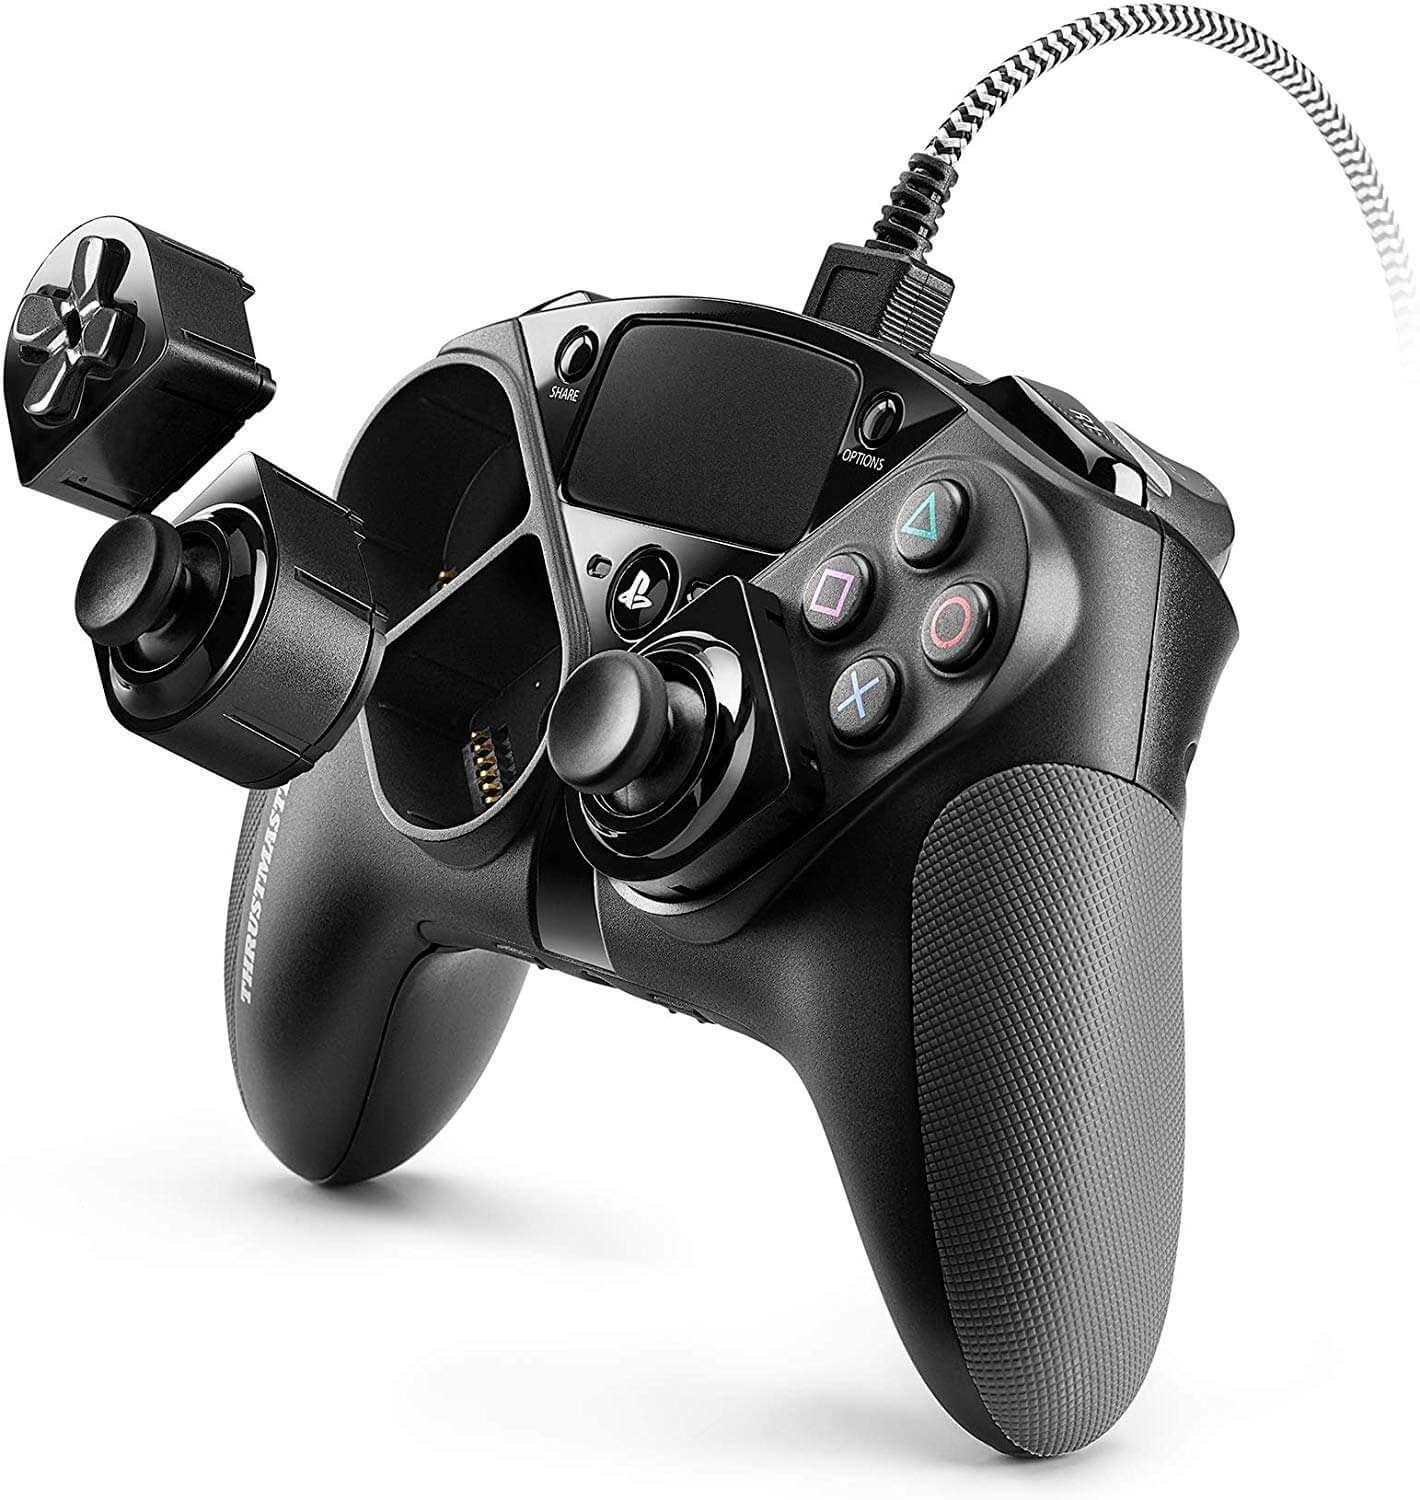 ThrustMaster eSwap Pro Controller: the versatile, wired professional controller for PS4 and PC (PS4)